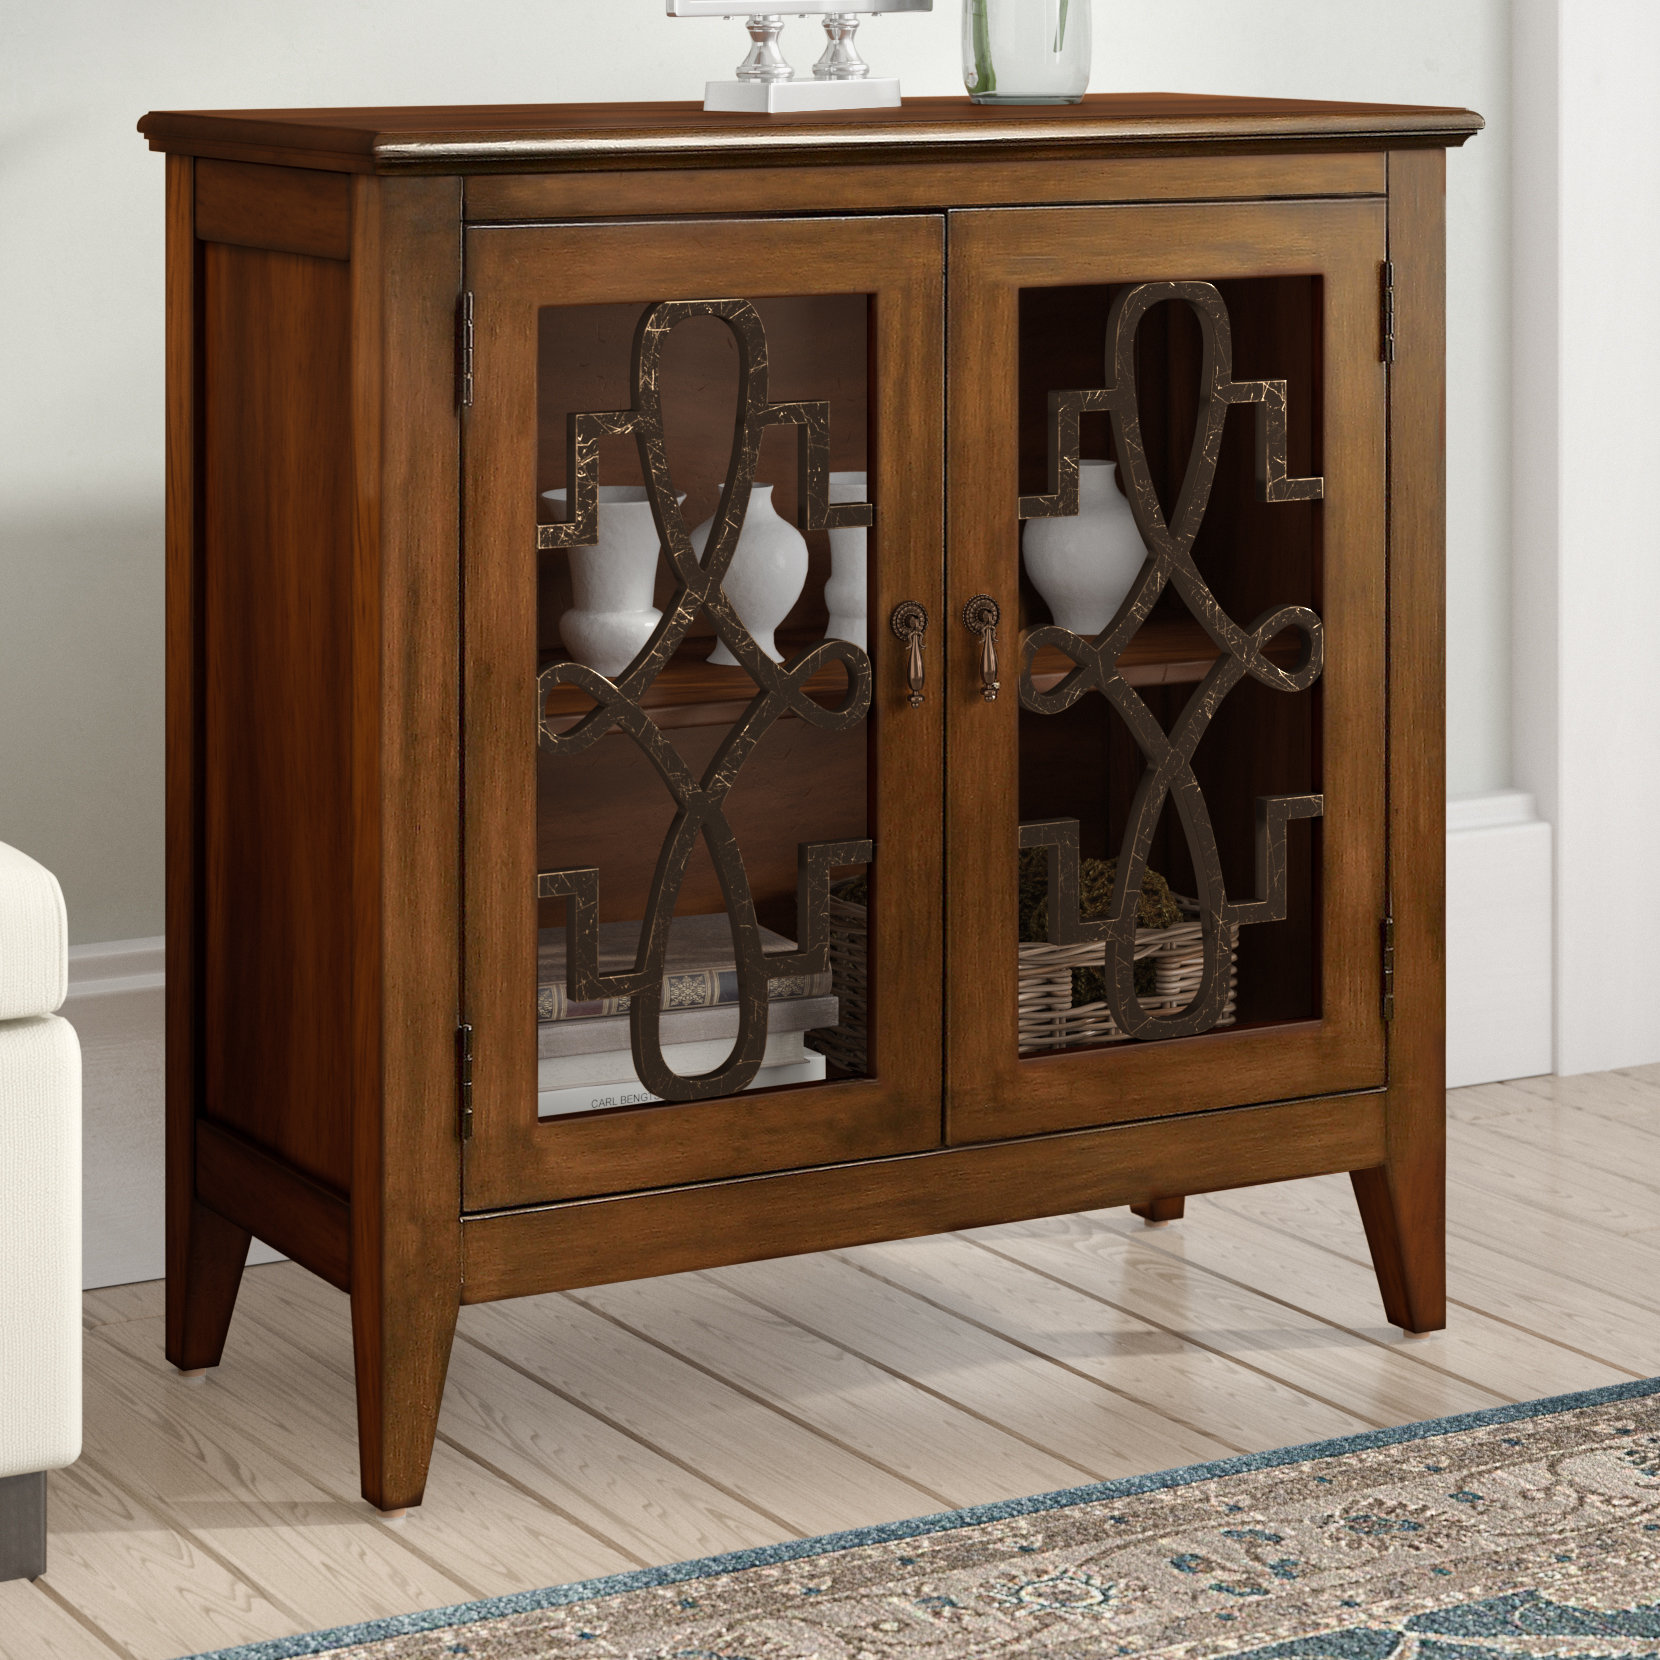 curiosit meaning office wonderful minister cabinetry cabinet podcast style room civics malayalam logo bengali kannada vintage definition albinson escape law marathi accent table